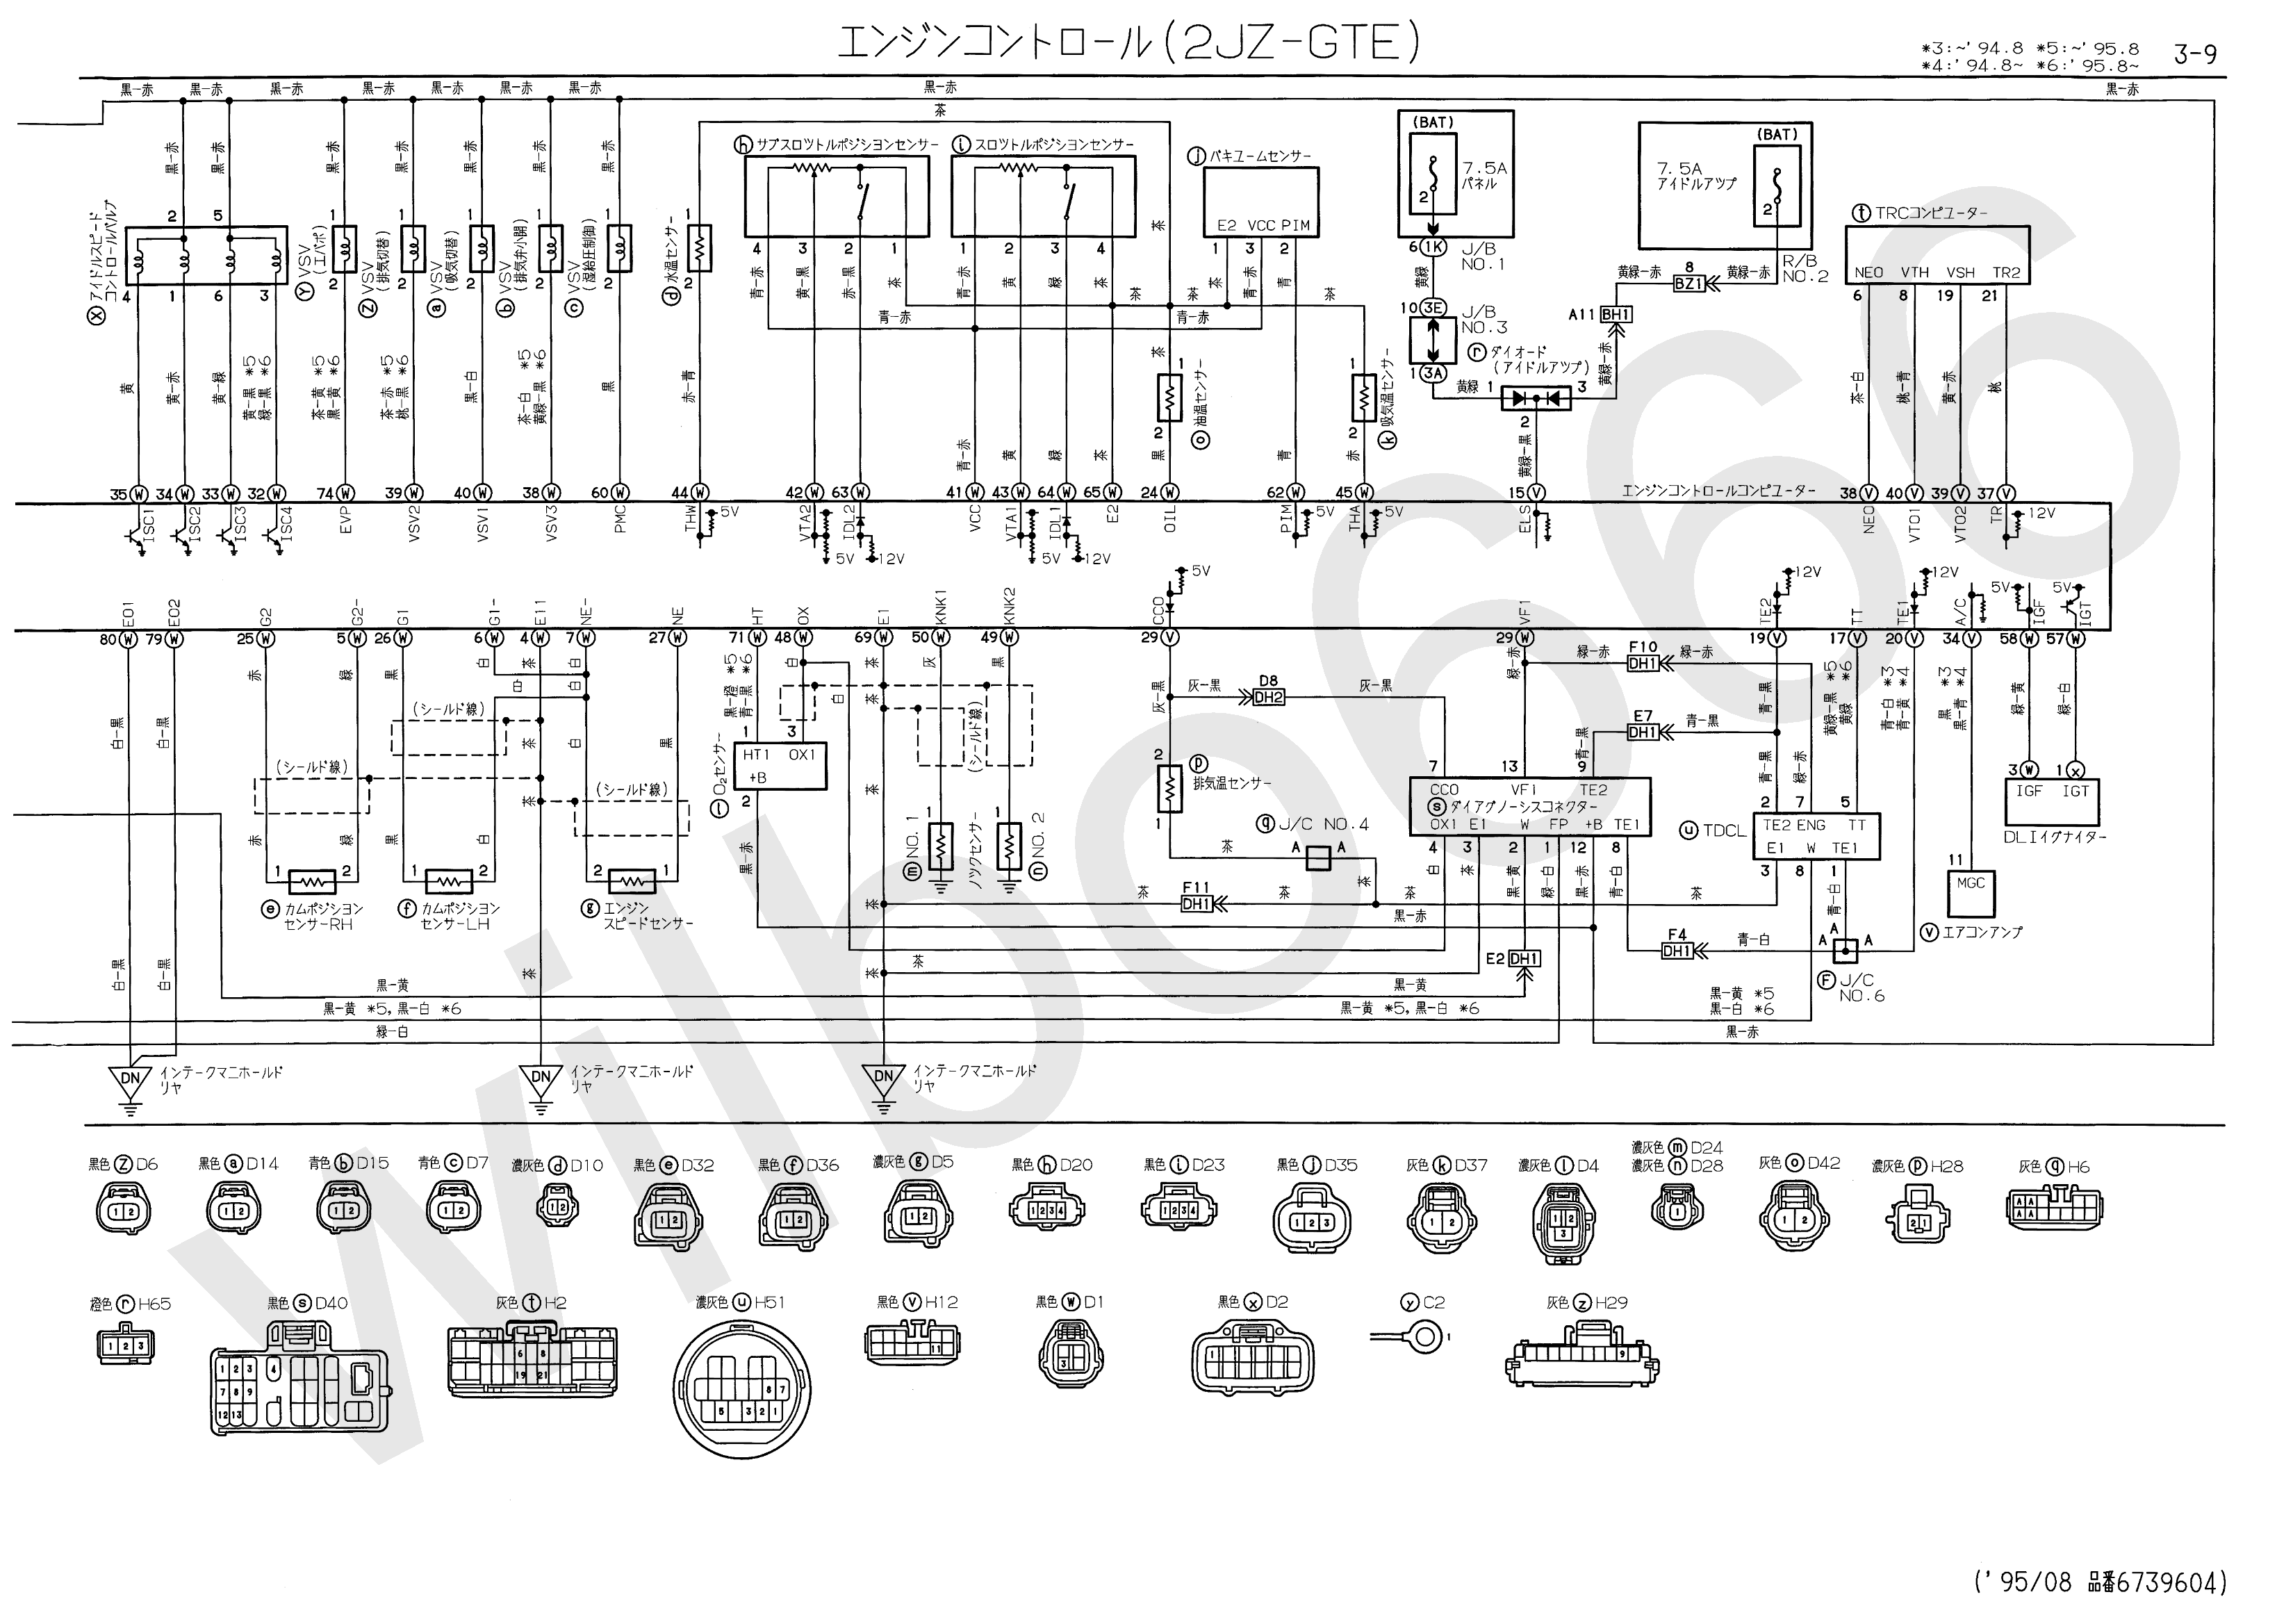 Wilbo666 2jz Gte Jzs147 Aristo Engine Wiring 1995 W 4 Electrical Diagrams Toyota Nsw Sta Diagram